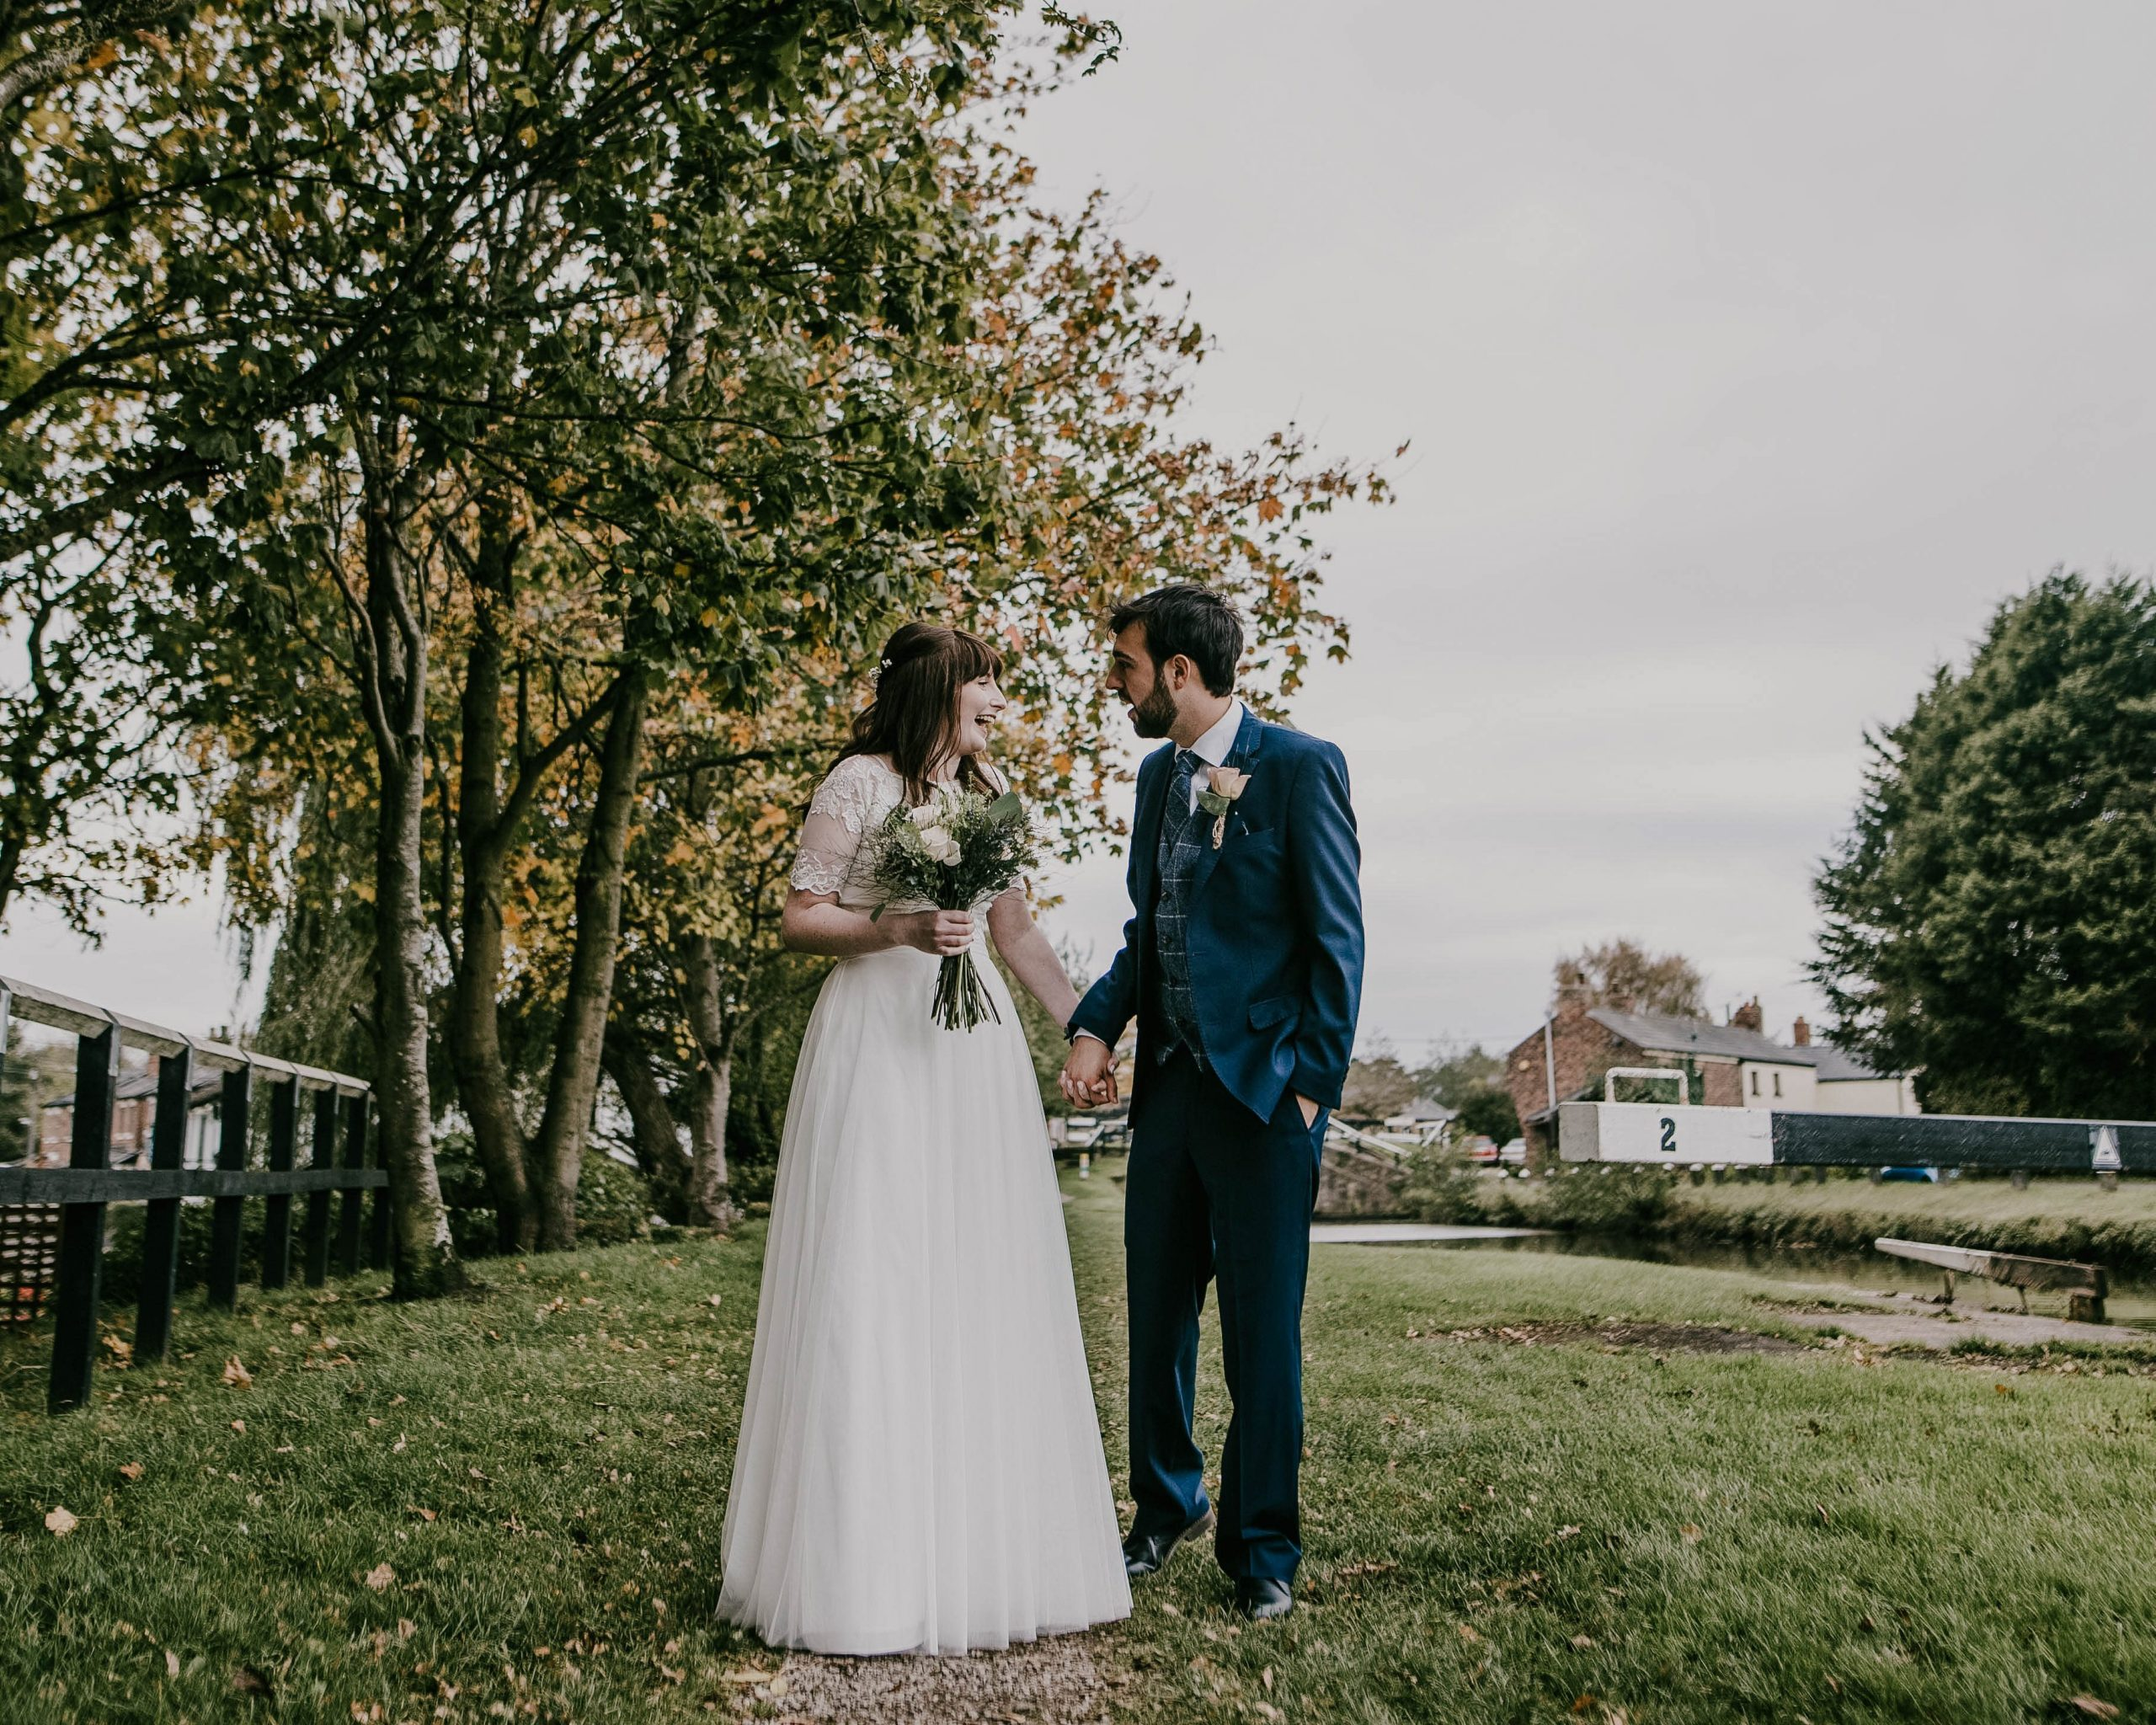 the bride and groom looking at one another, Lancashire Wedding photography